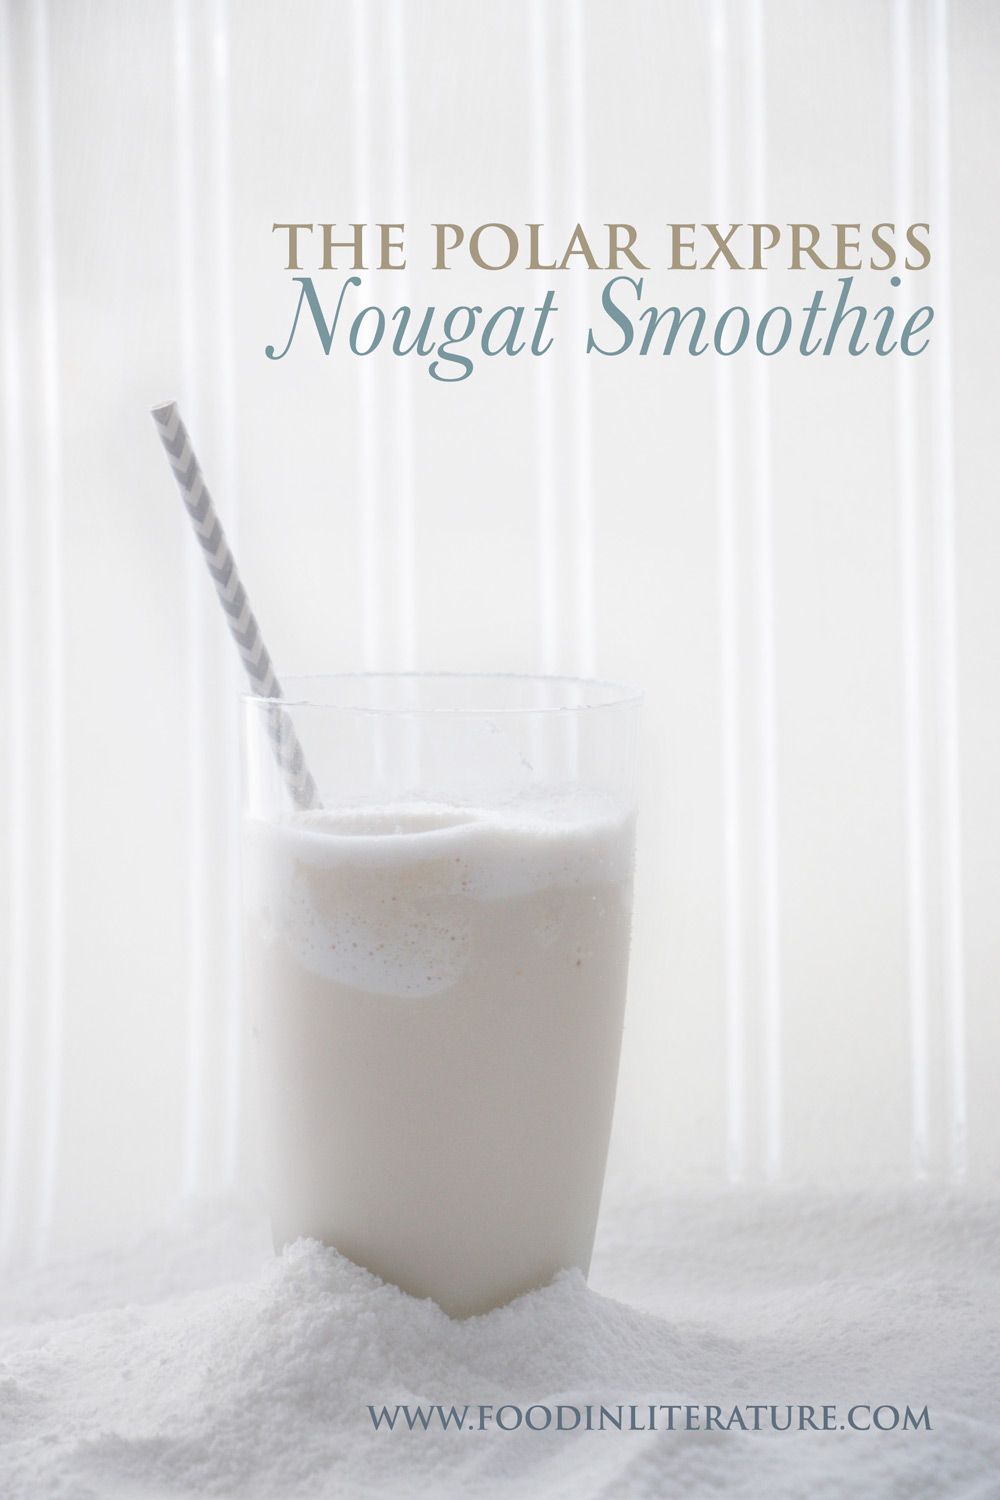 The Polar Express; Nougat Smoothie